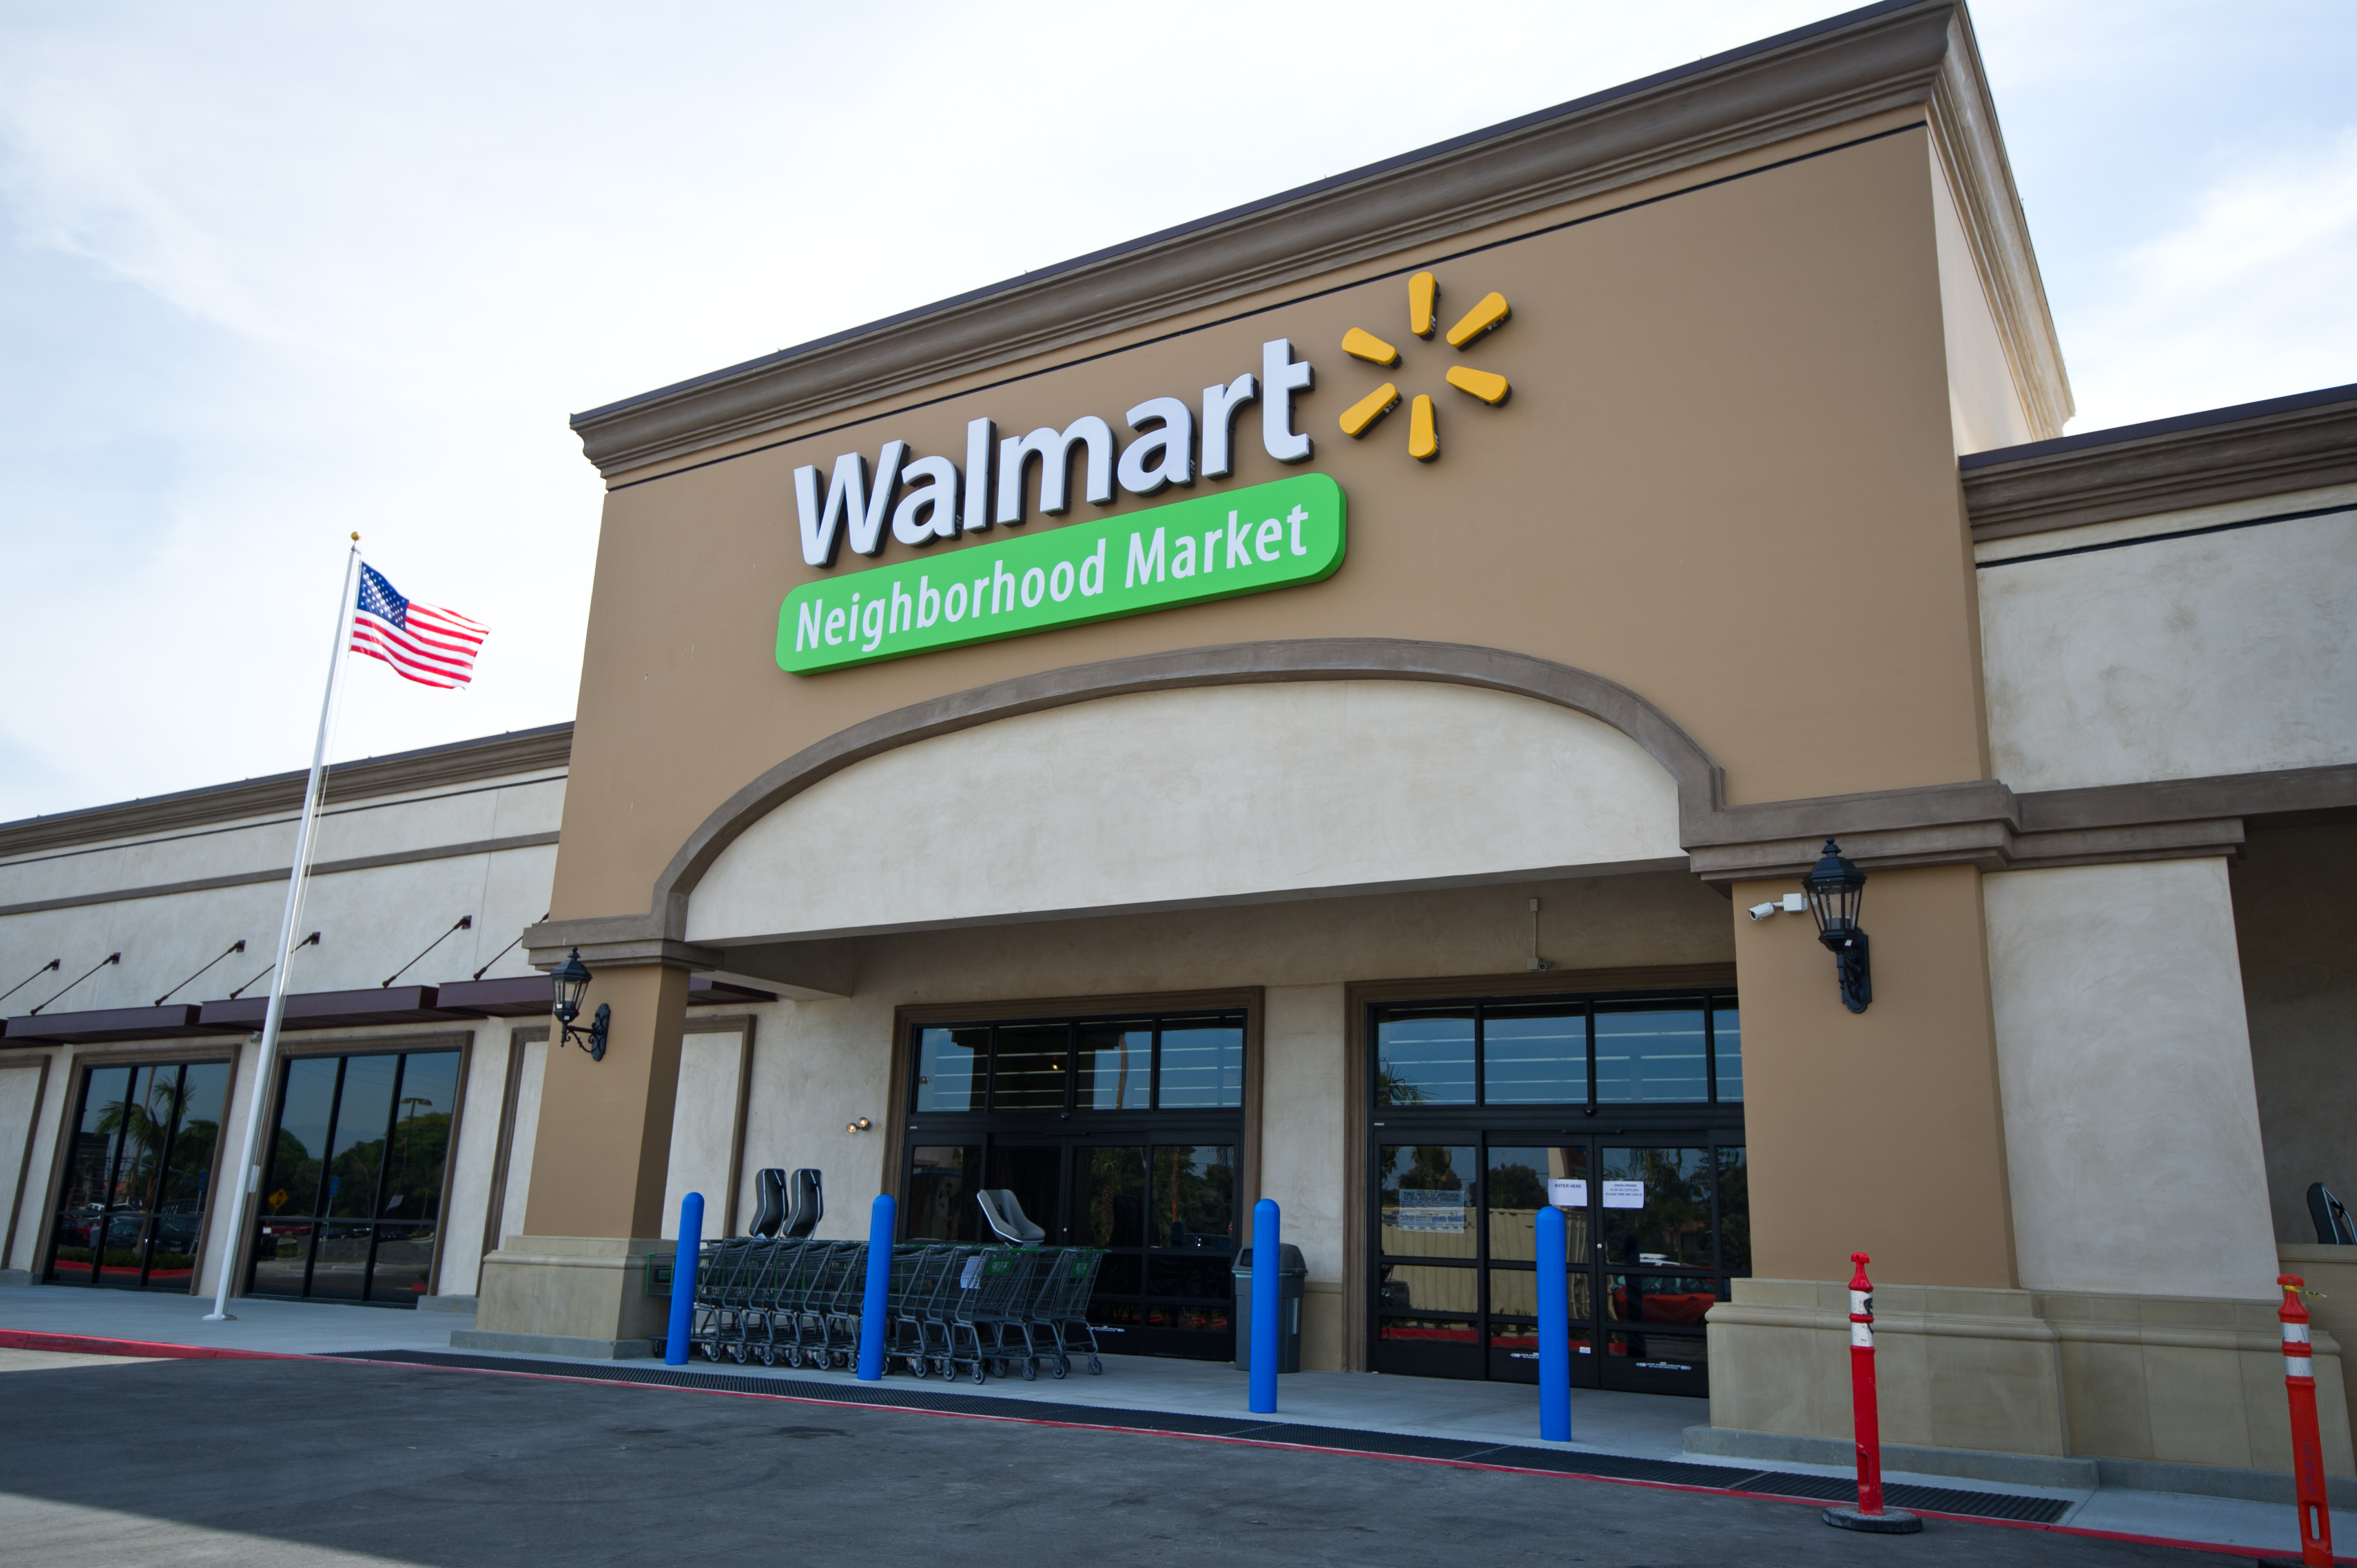 Walmart, the number one retailer company in the United States founded by Sam Walton in July of in the small town of Rogers, Arkansas, has developed Walmart Photo services, alongside music downloads, in its continuing effort to provide the consumer public with top rate merchandise.